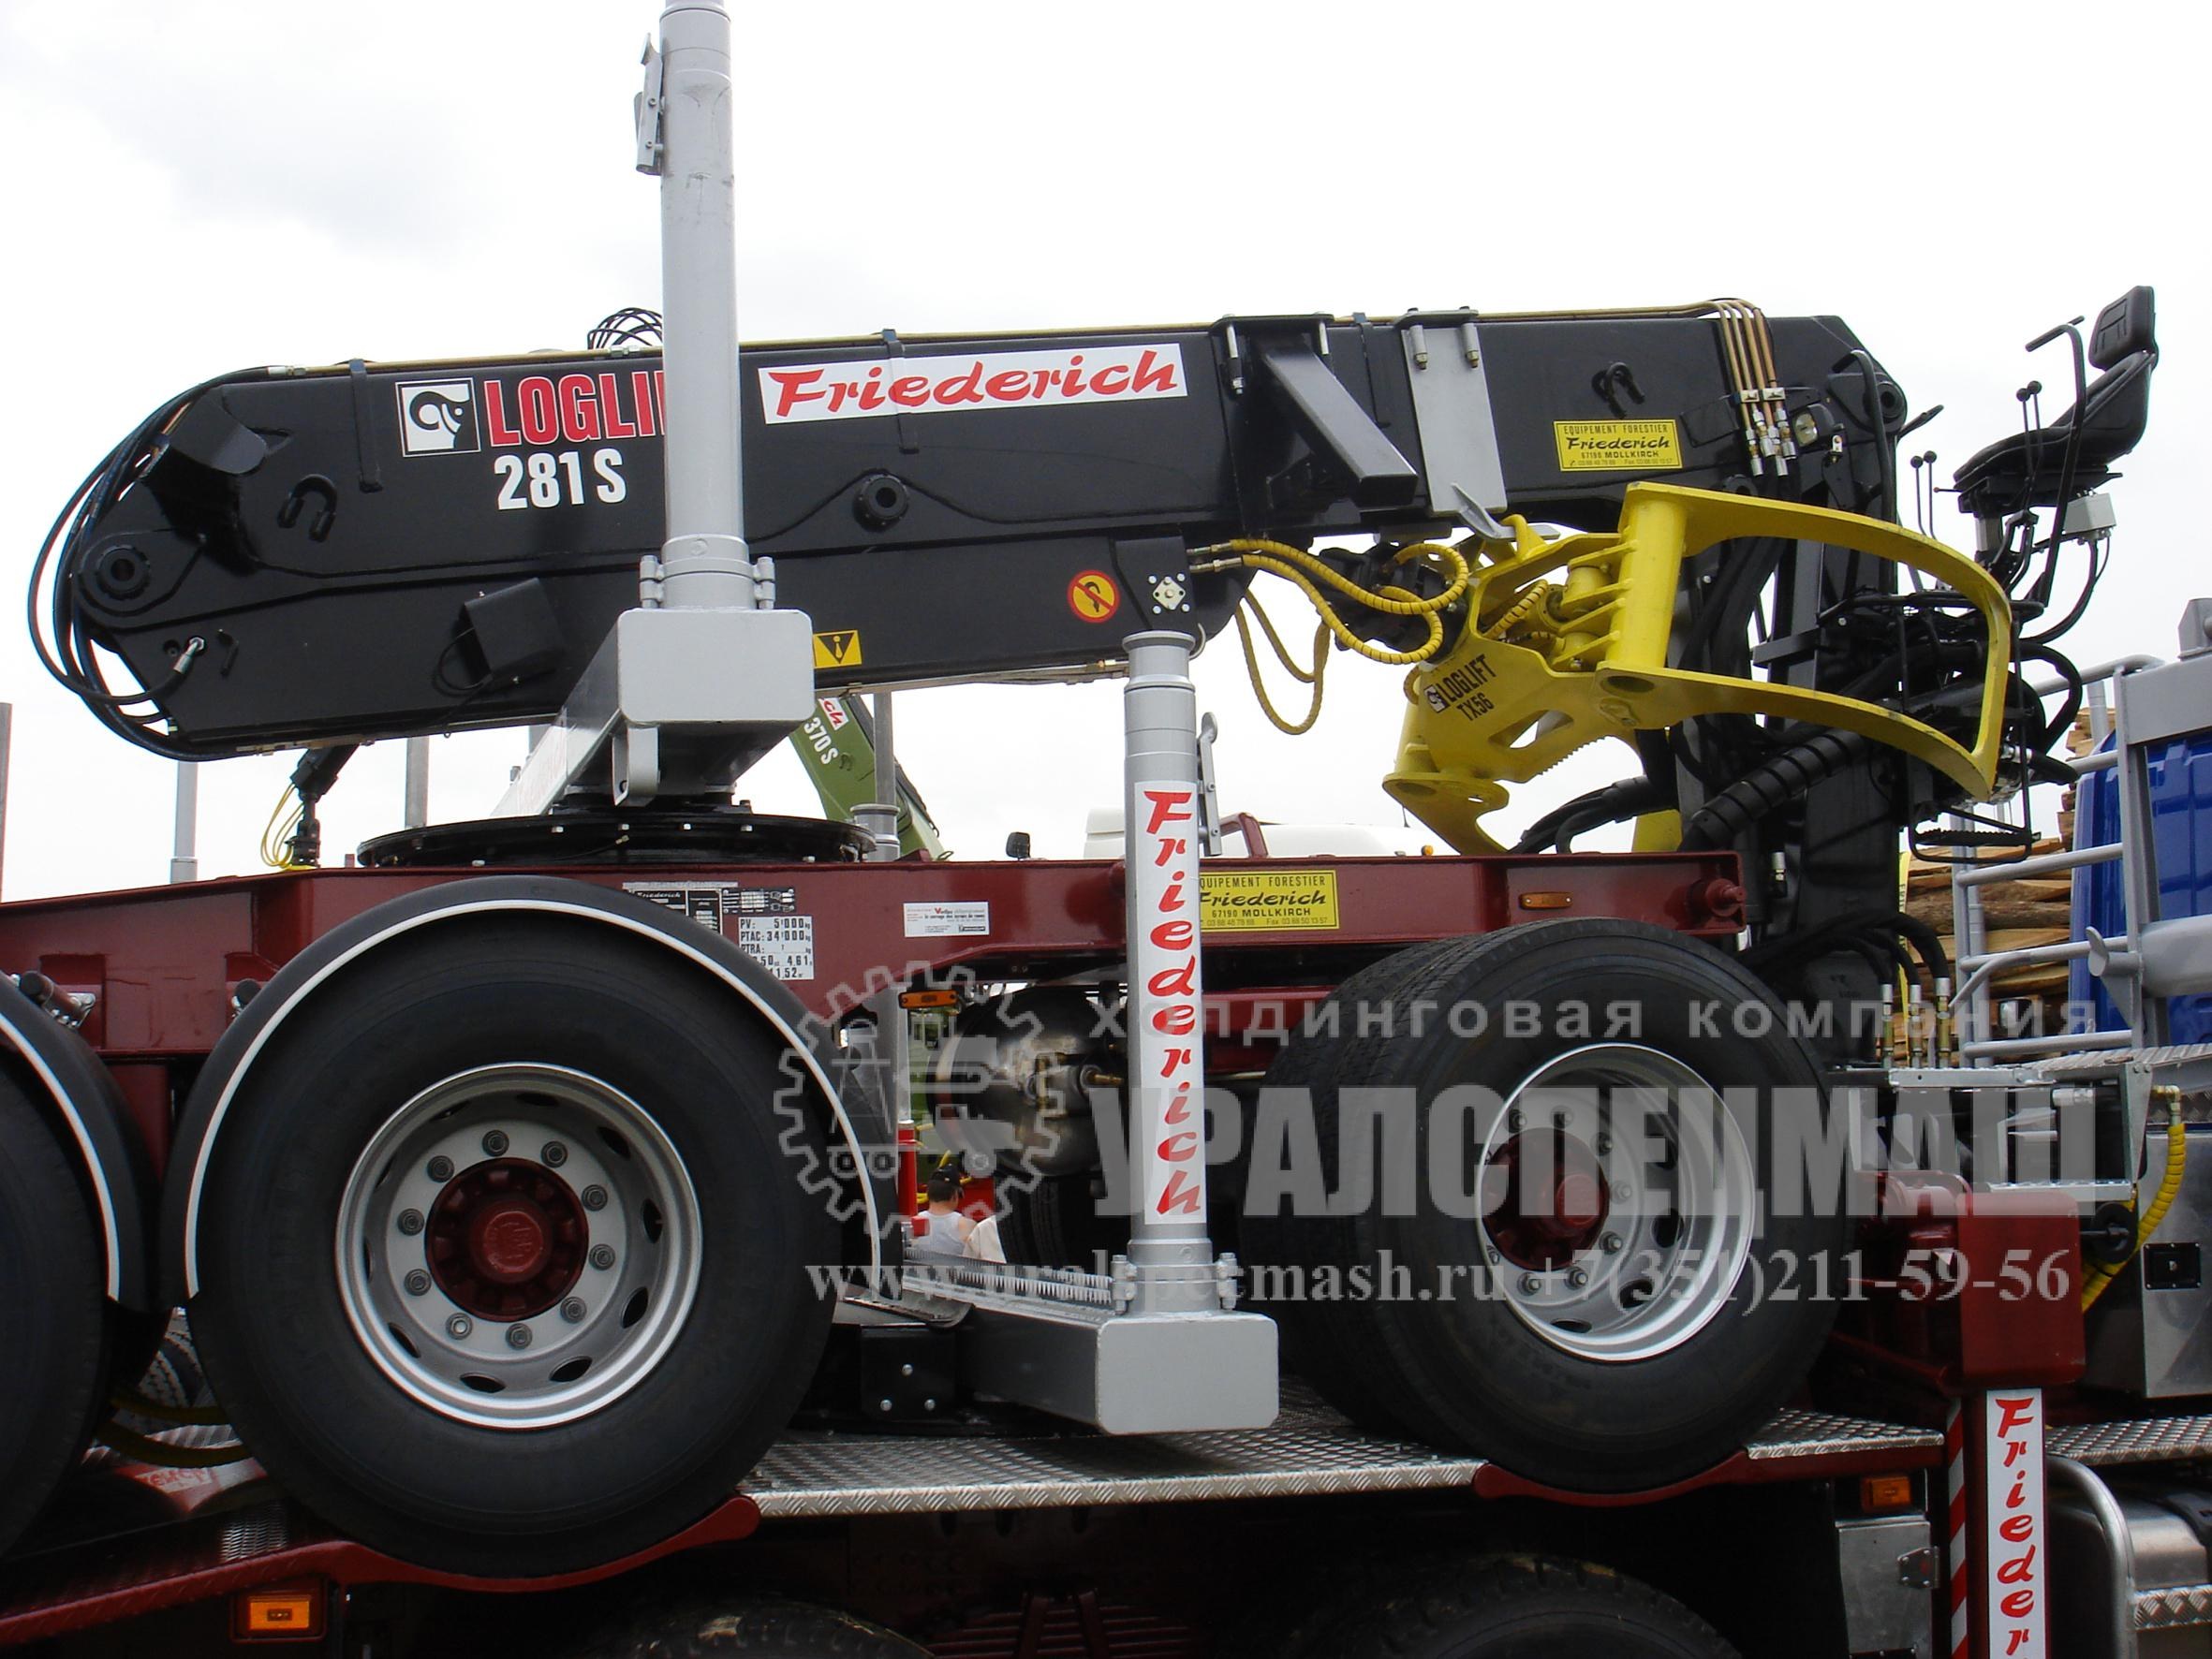 LOGLIFT F 281 S 91